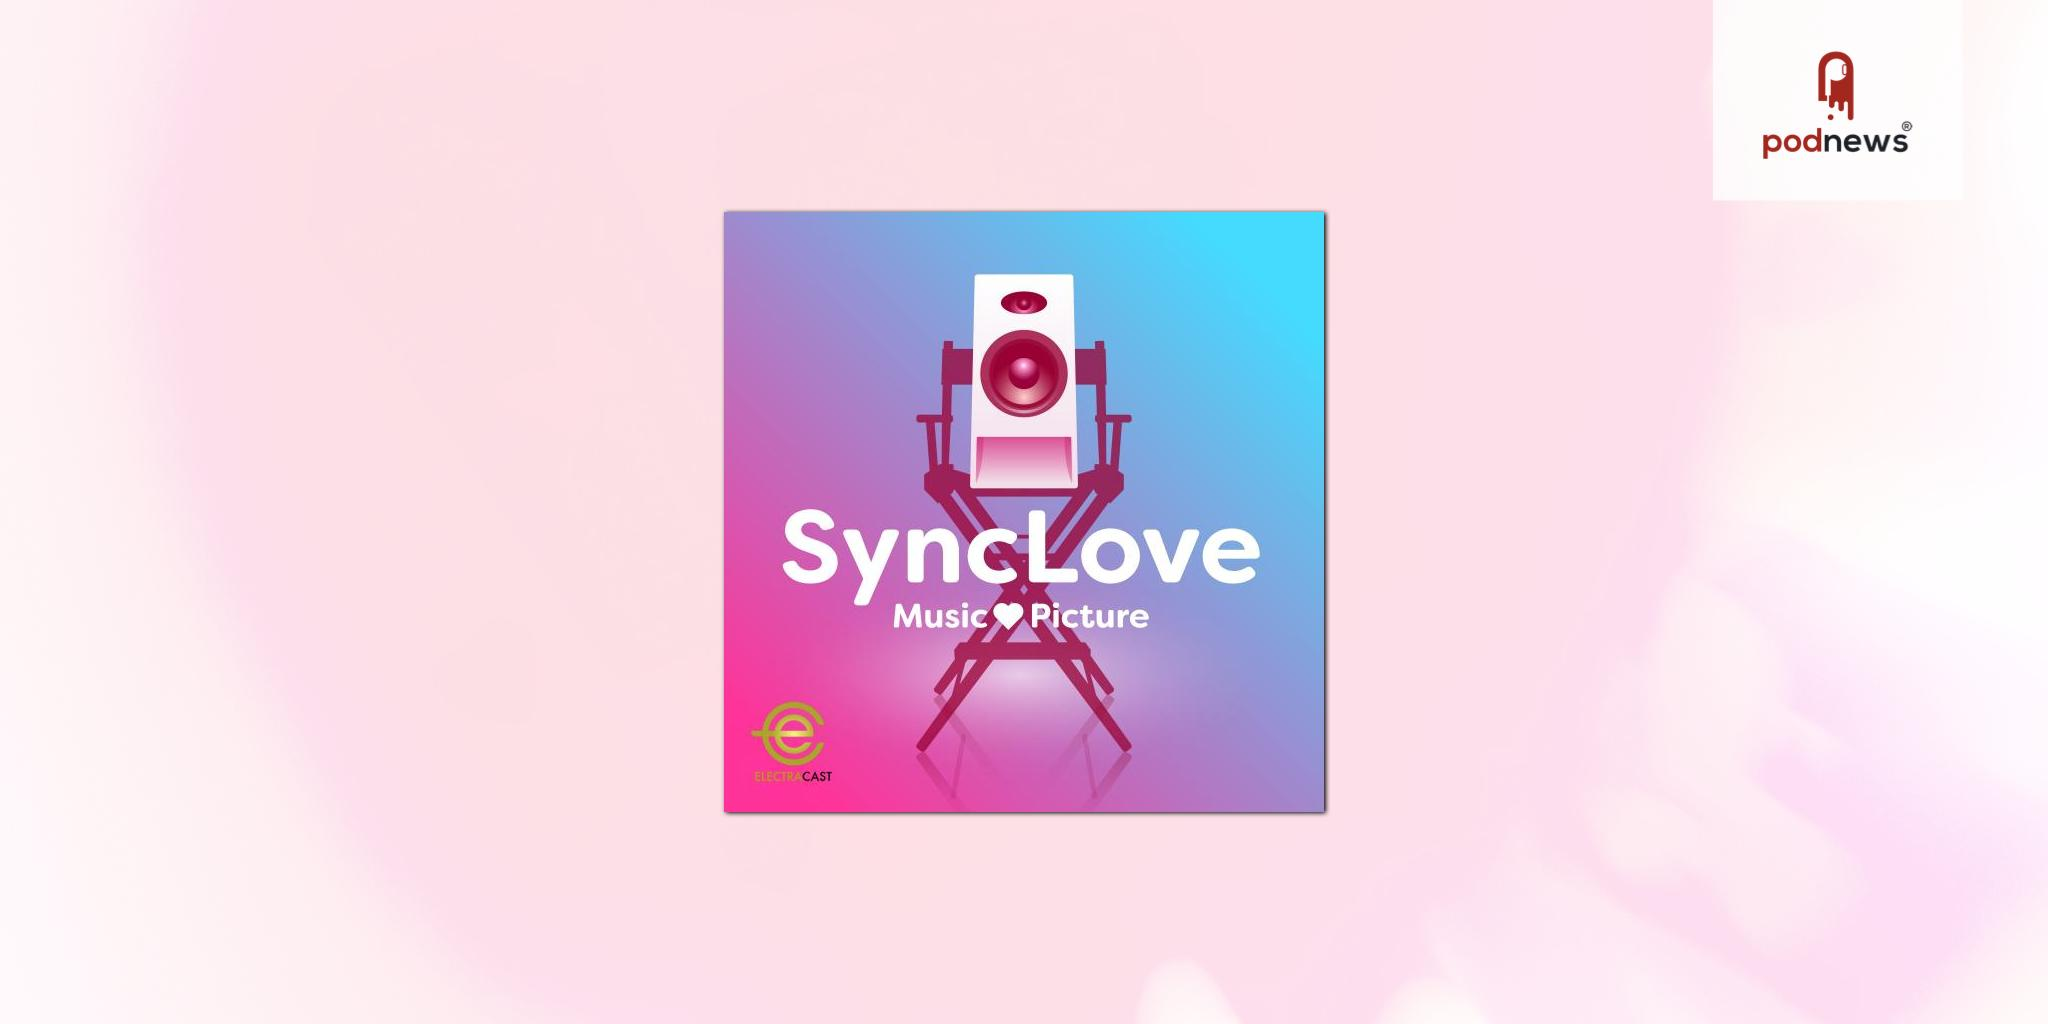 SyncFloor's SyncLove Returns as a New Podcast, Thanks to ElectraCast